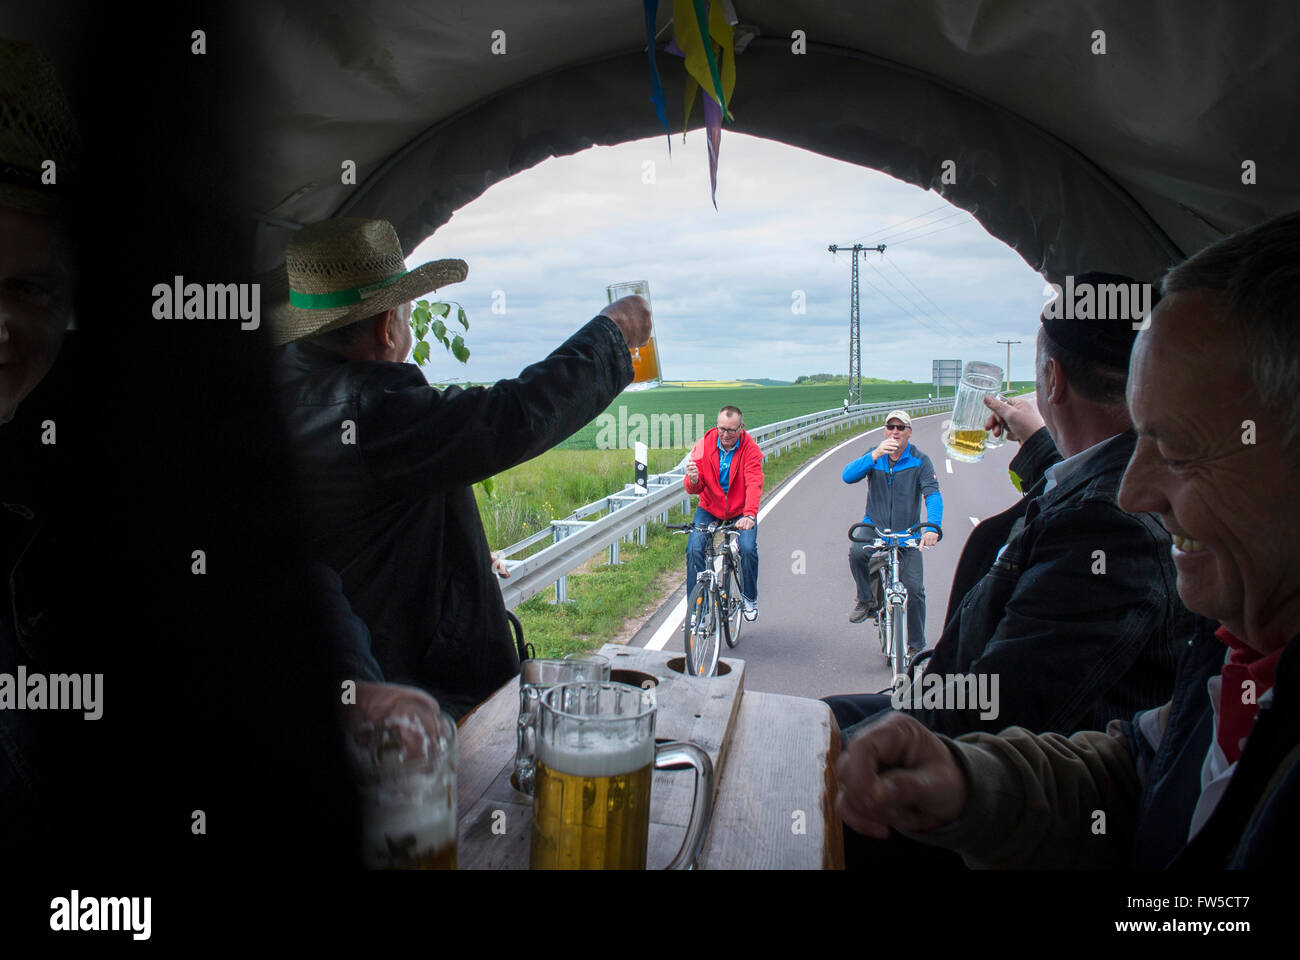 The  'Dornitzer Himmelfahrtskommando' 7 man team celebrate Manner Tag (Fathers Day)  in the traditional - Stock Image